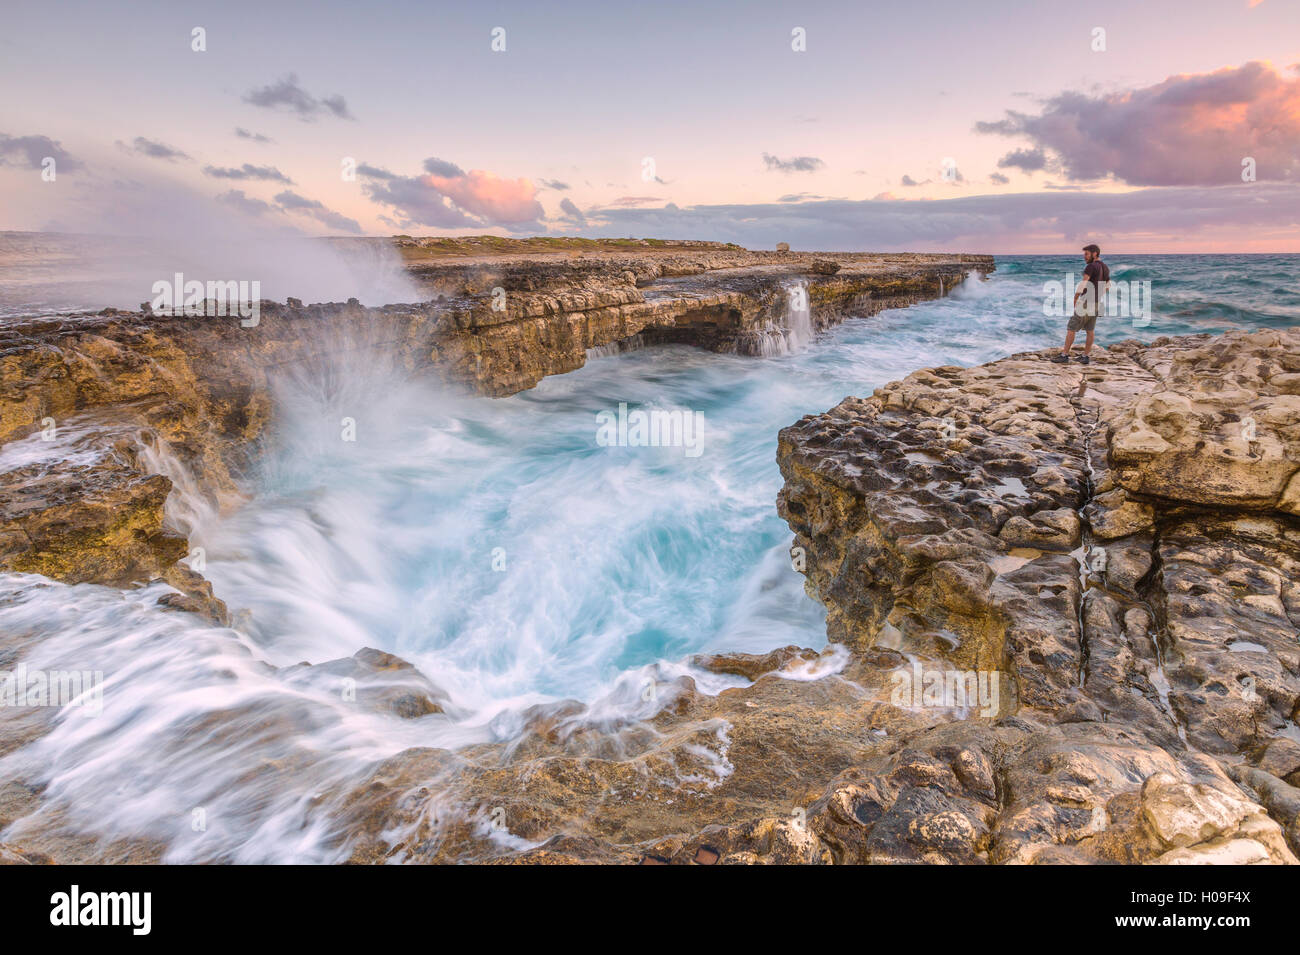 Hiker on the cliffs admires the crashing waves at Devil's Bridge, Antigua, Antigua and Barbuda, Leeward Islands, - Stock Image